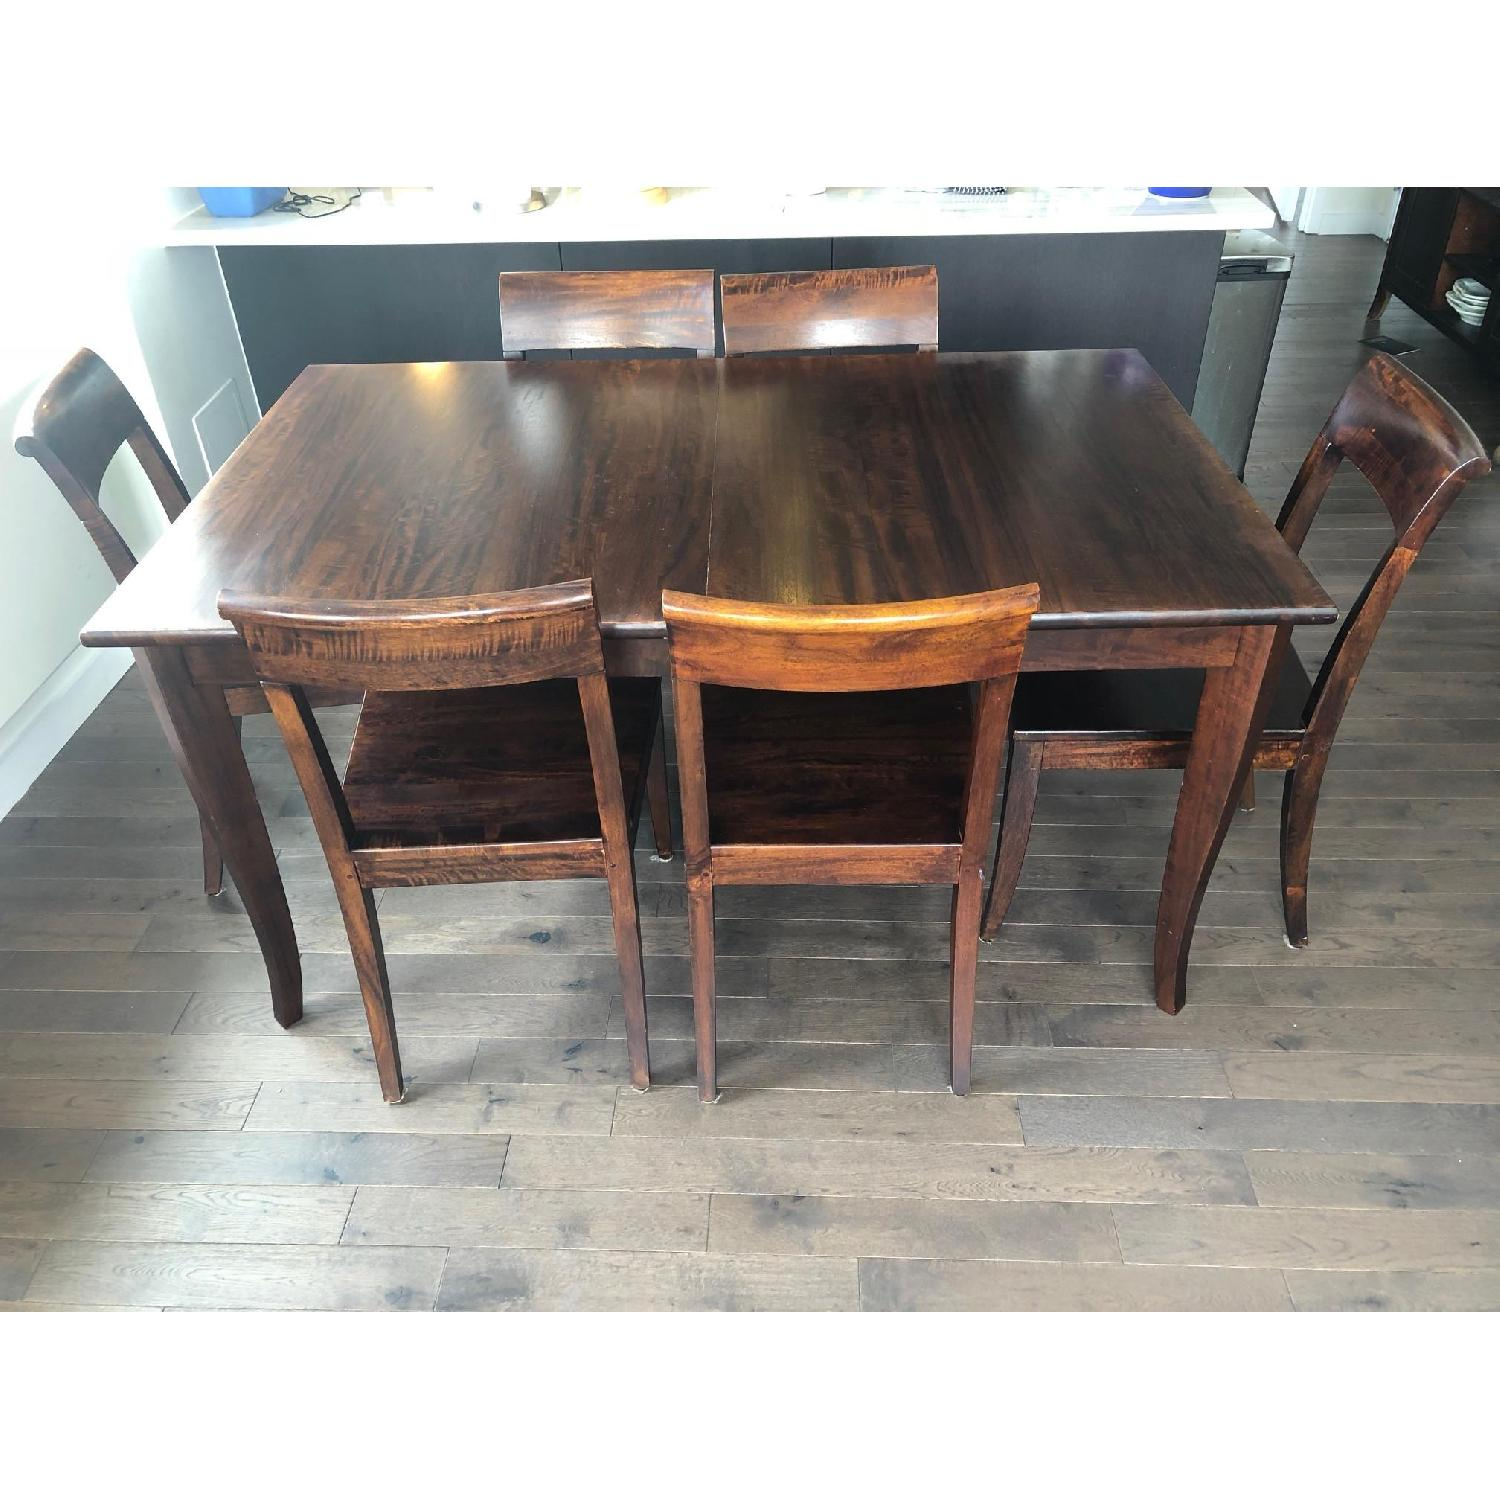 Crate Barrel Cabria Dining Table W 6 Chairs Aptdeco